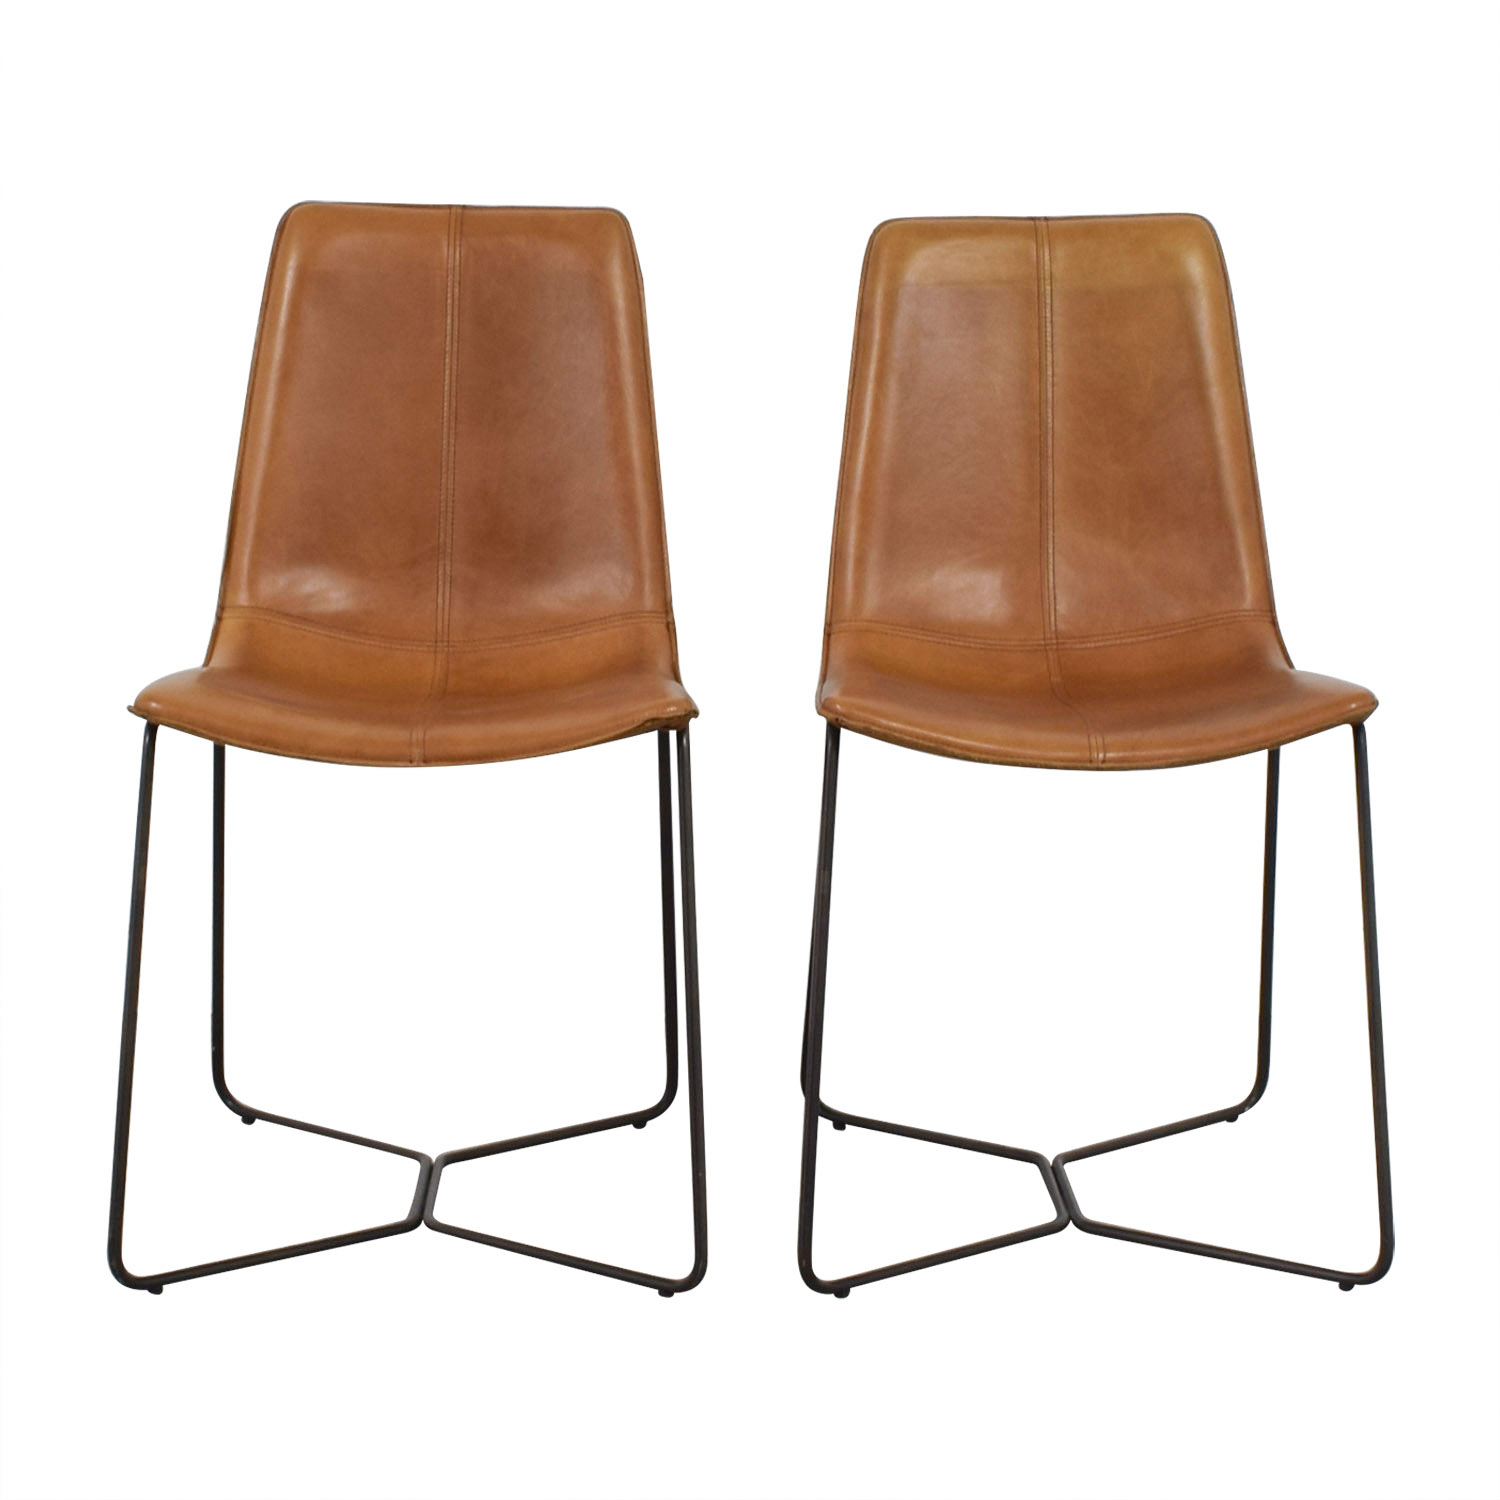 West Elm West Elm Leather Slope Dining Chairs for sale